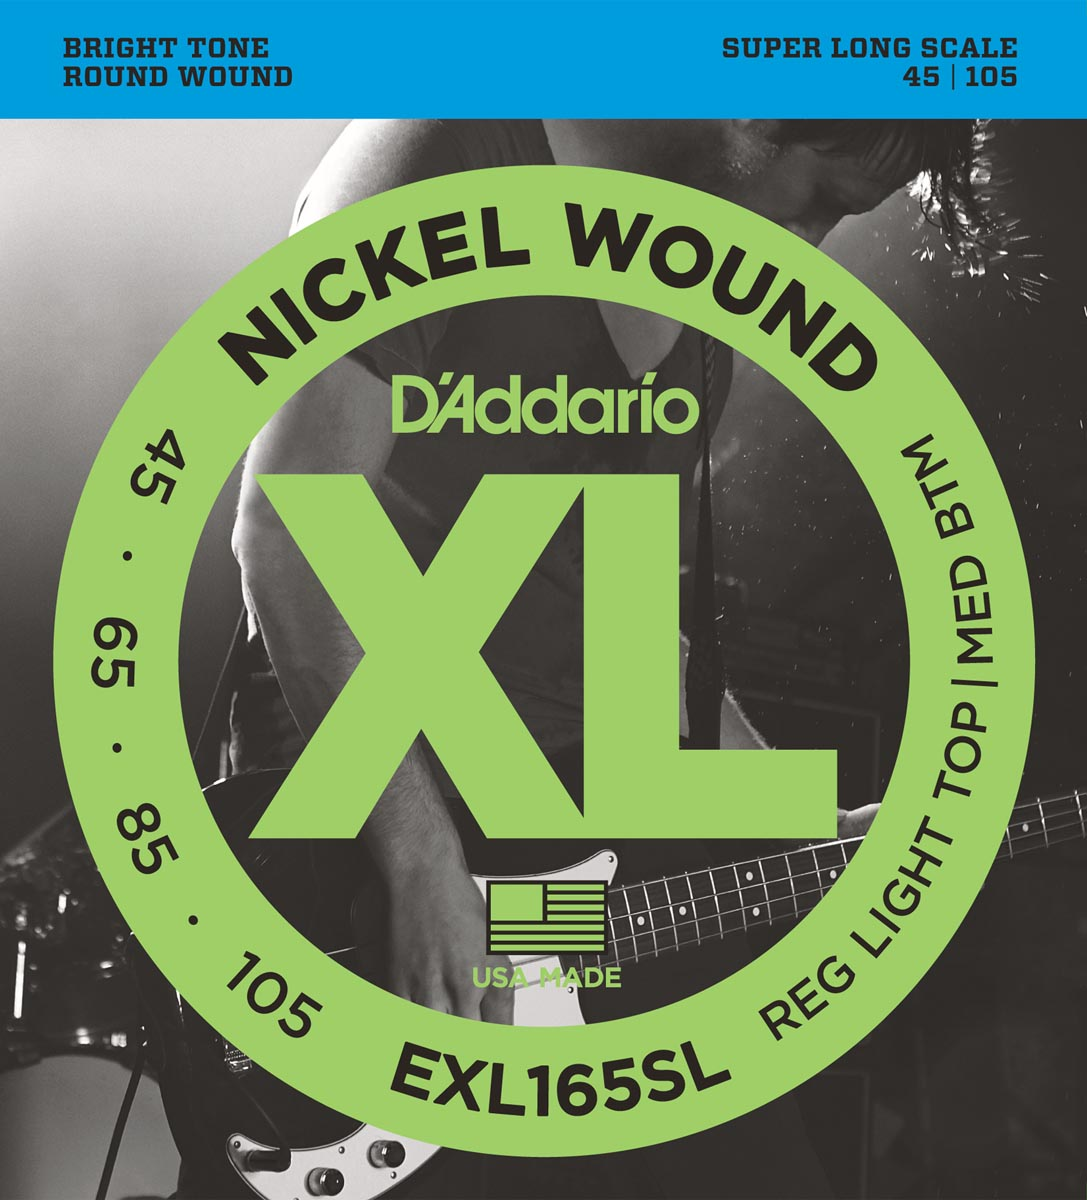 DADDARIO EXL165SL SUPER LONG SCALE [45-105]